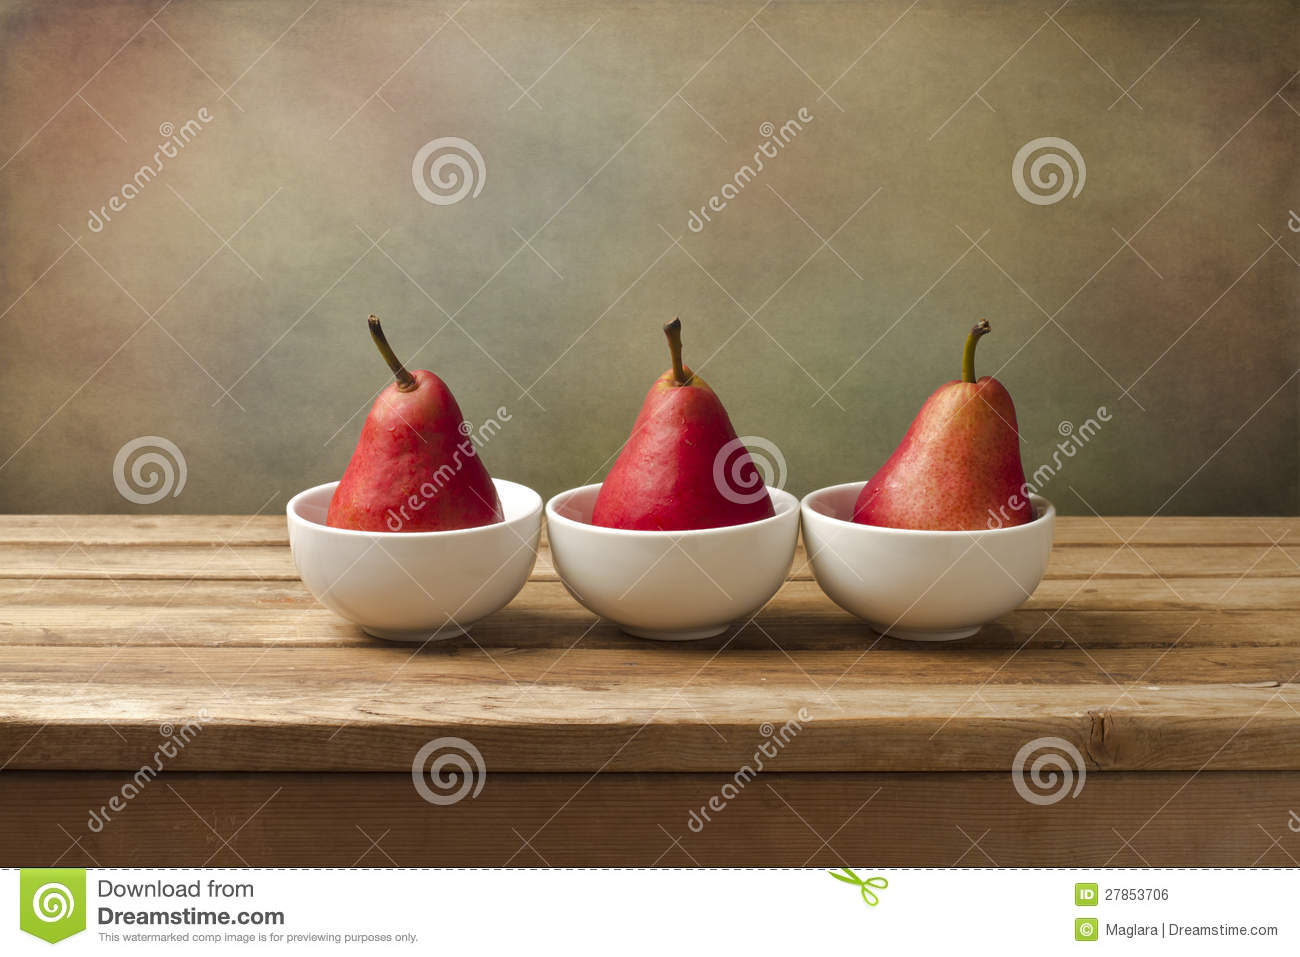 Fine art still life with red pears